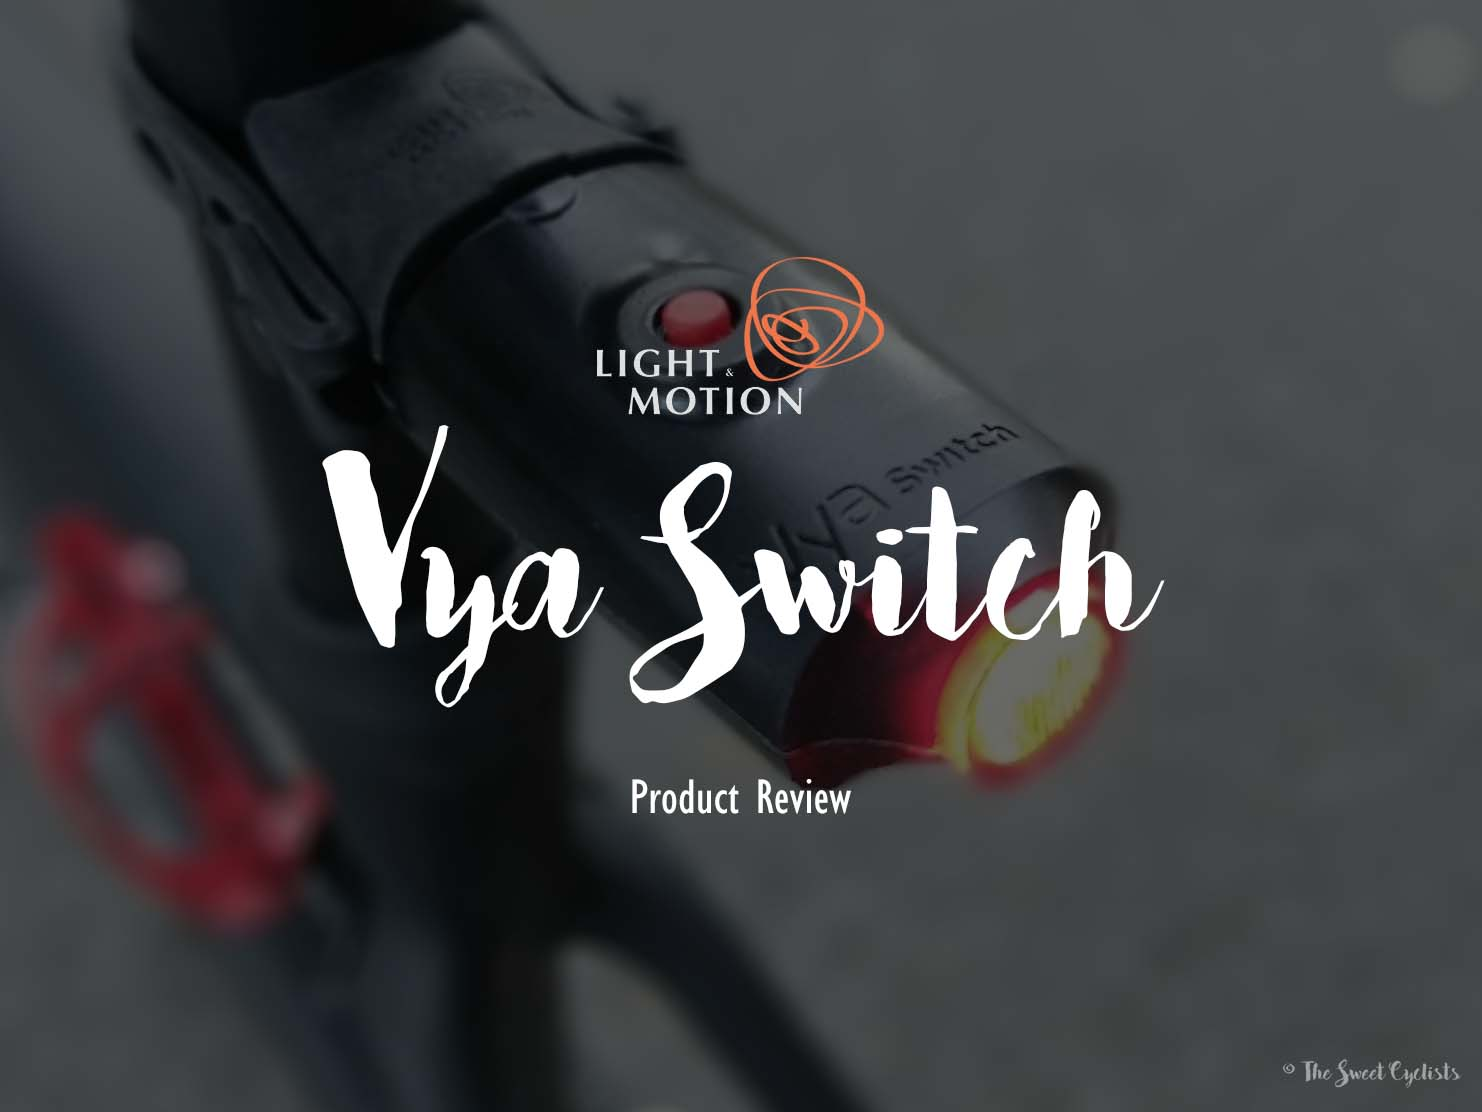 The new Vya Switch re-introduces user control on the popular Vya bike lights